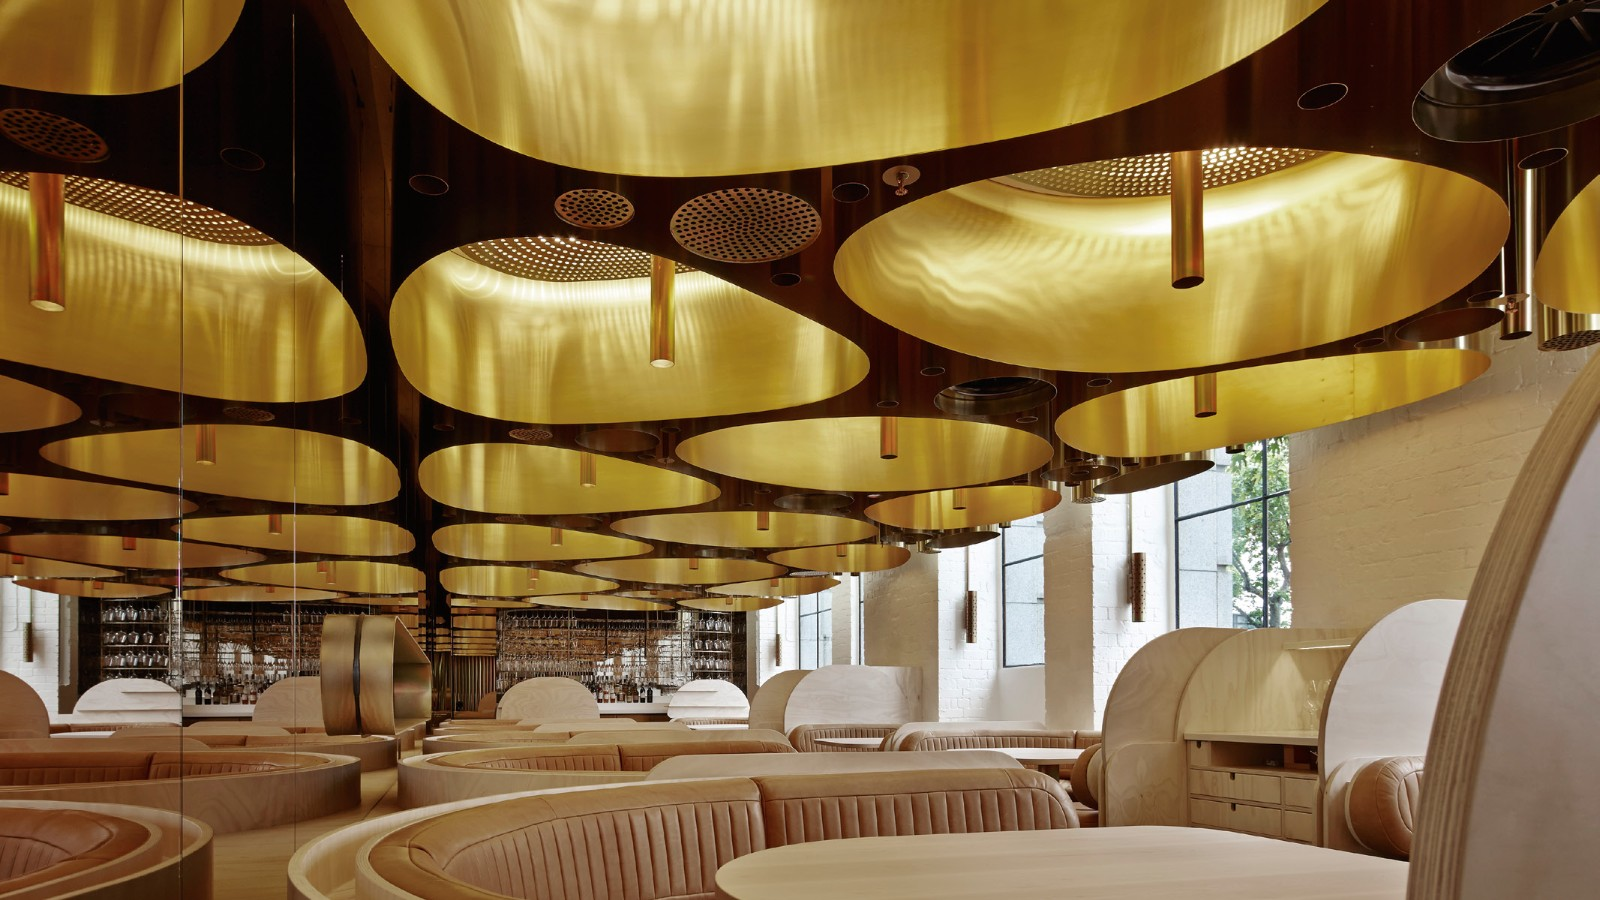 17 stunning restaurant designs from around the world style for Design restaurants club